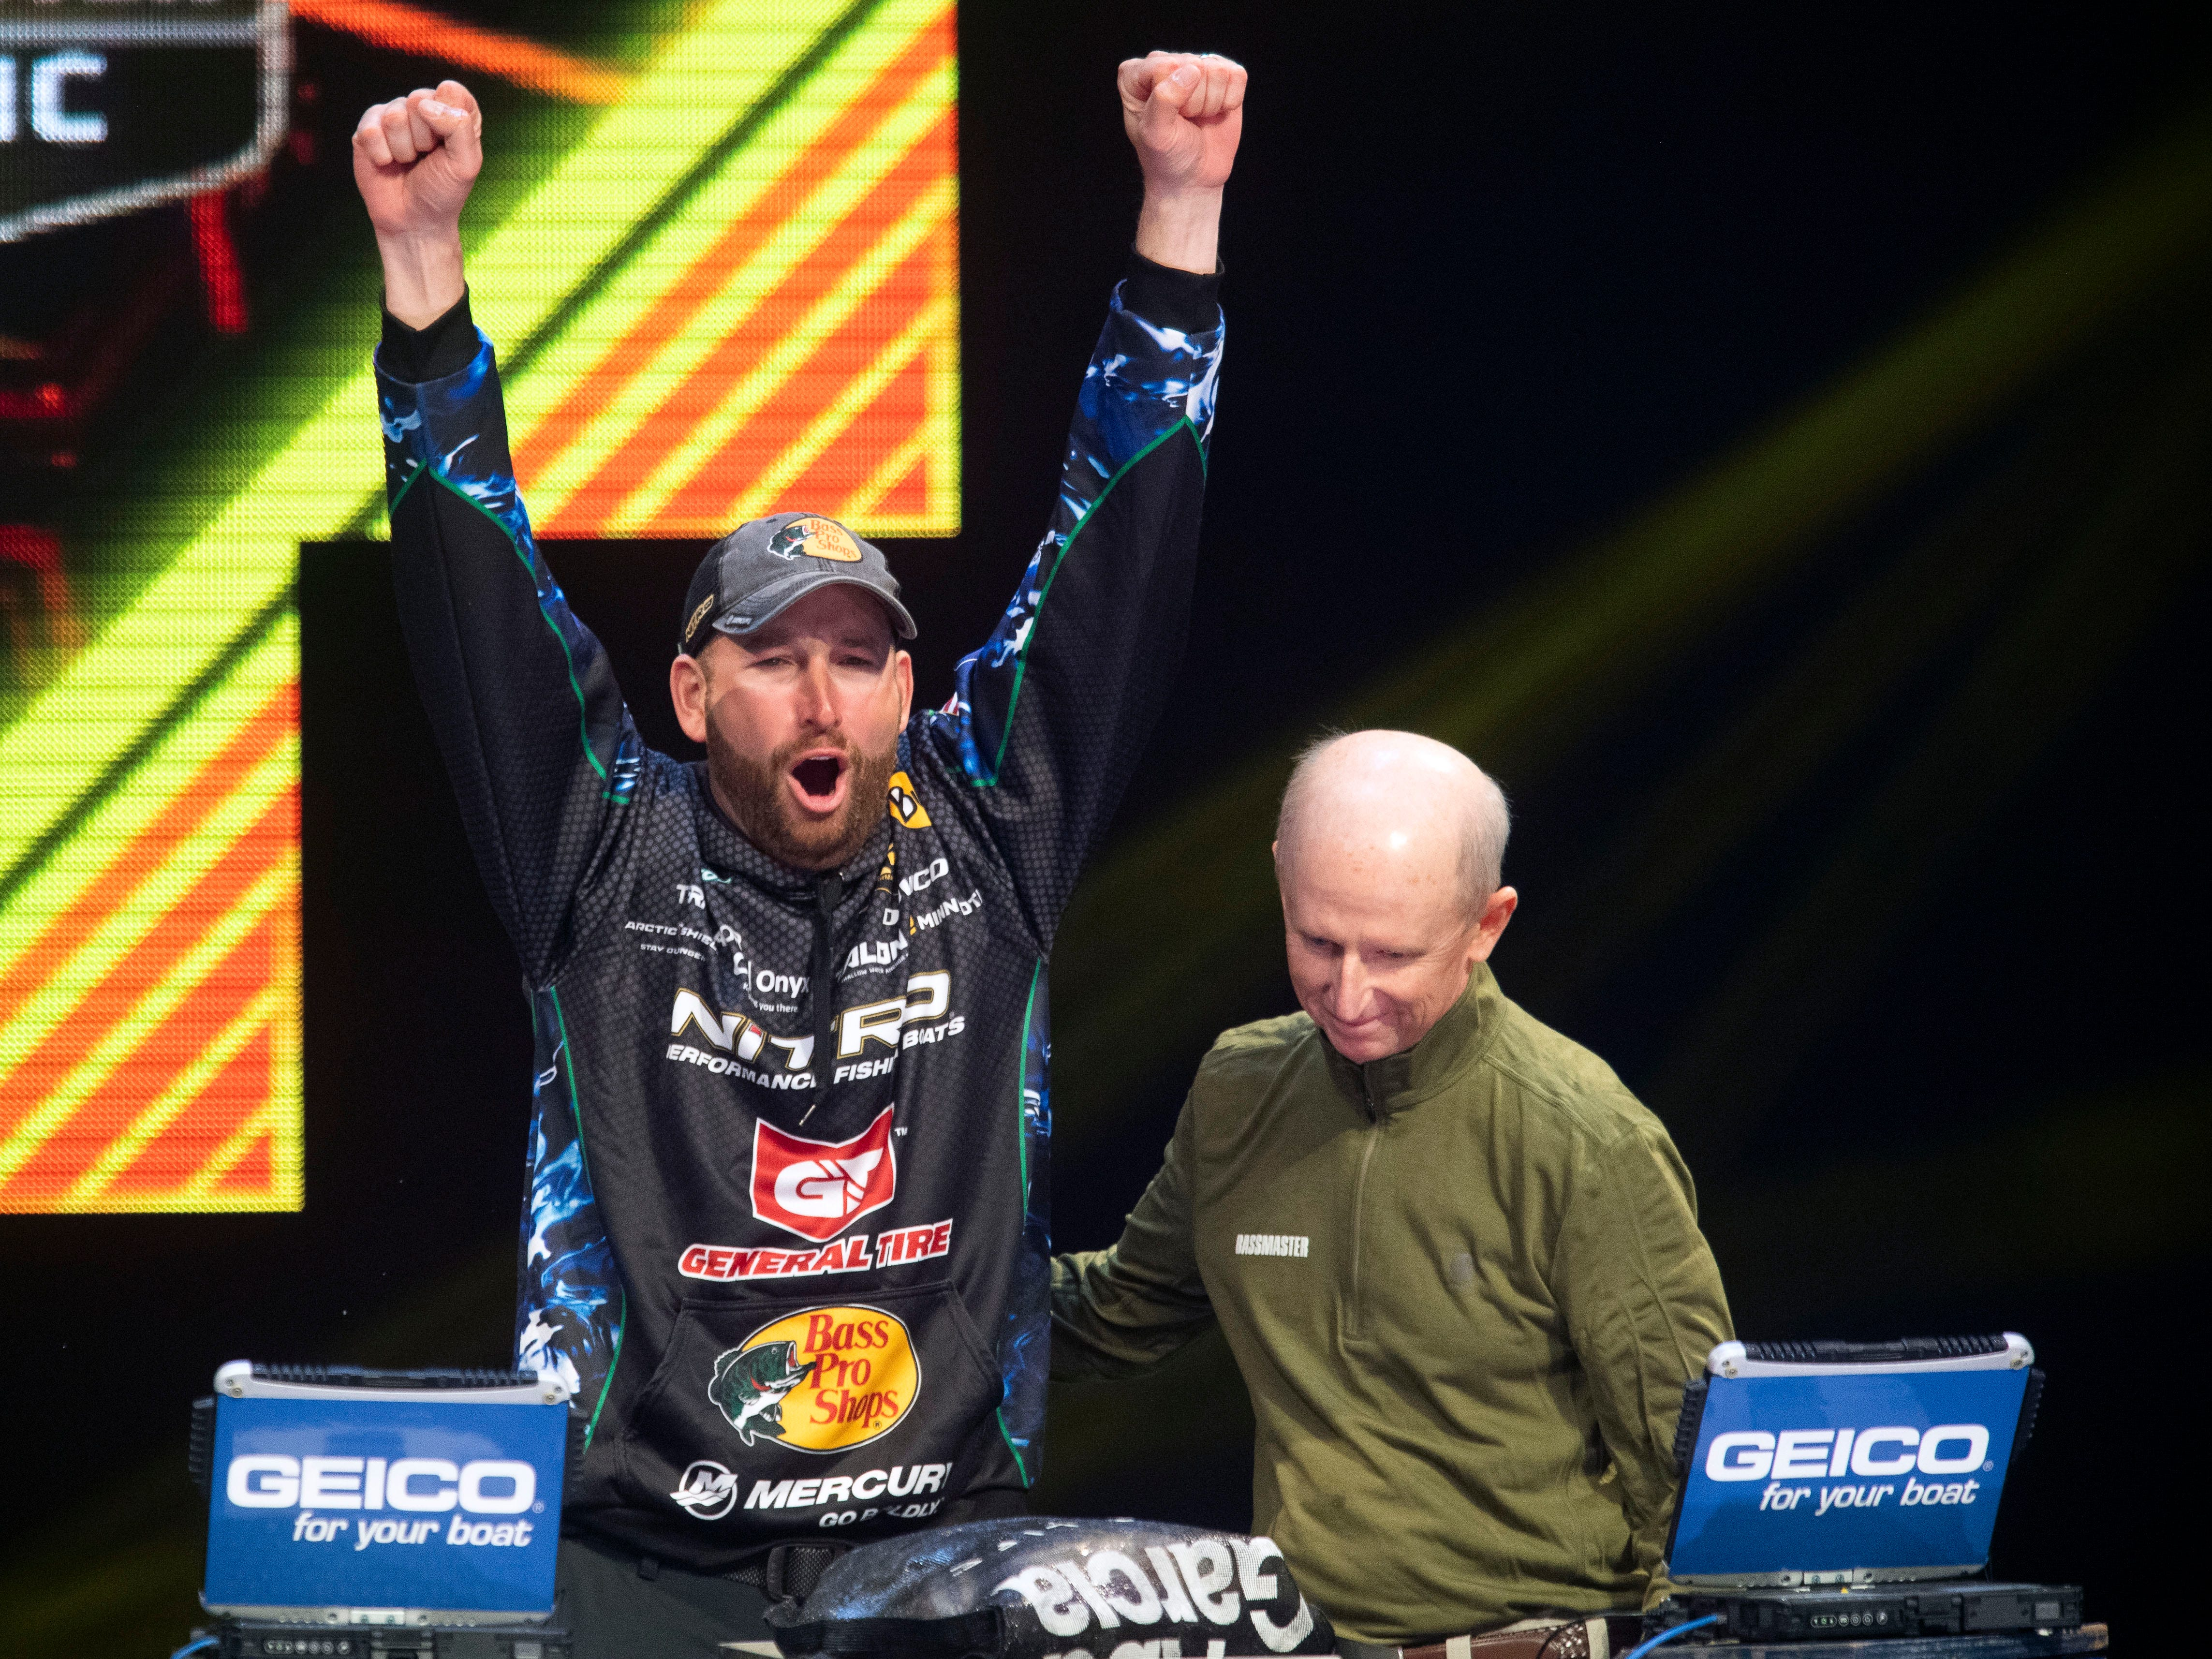 Ott DeFoe celebrates as his weigh-in gives him the lead in  the Bassmaster Classic during on Sunday, March 17, 2019. At right is tournament director Tripp Weldon.